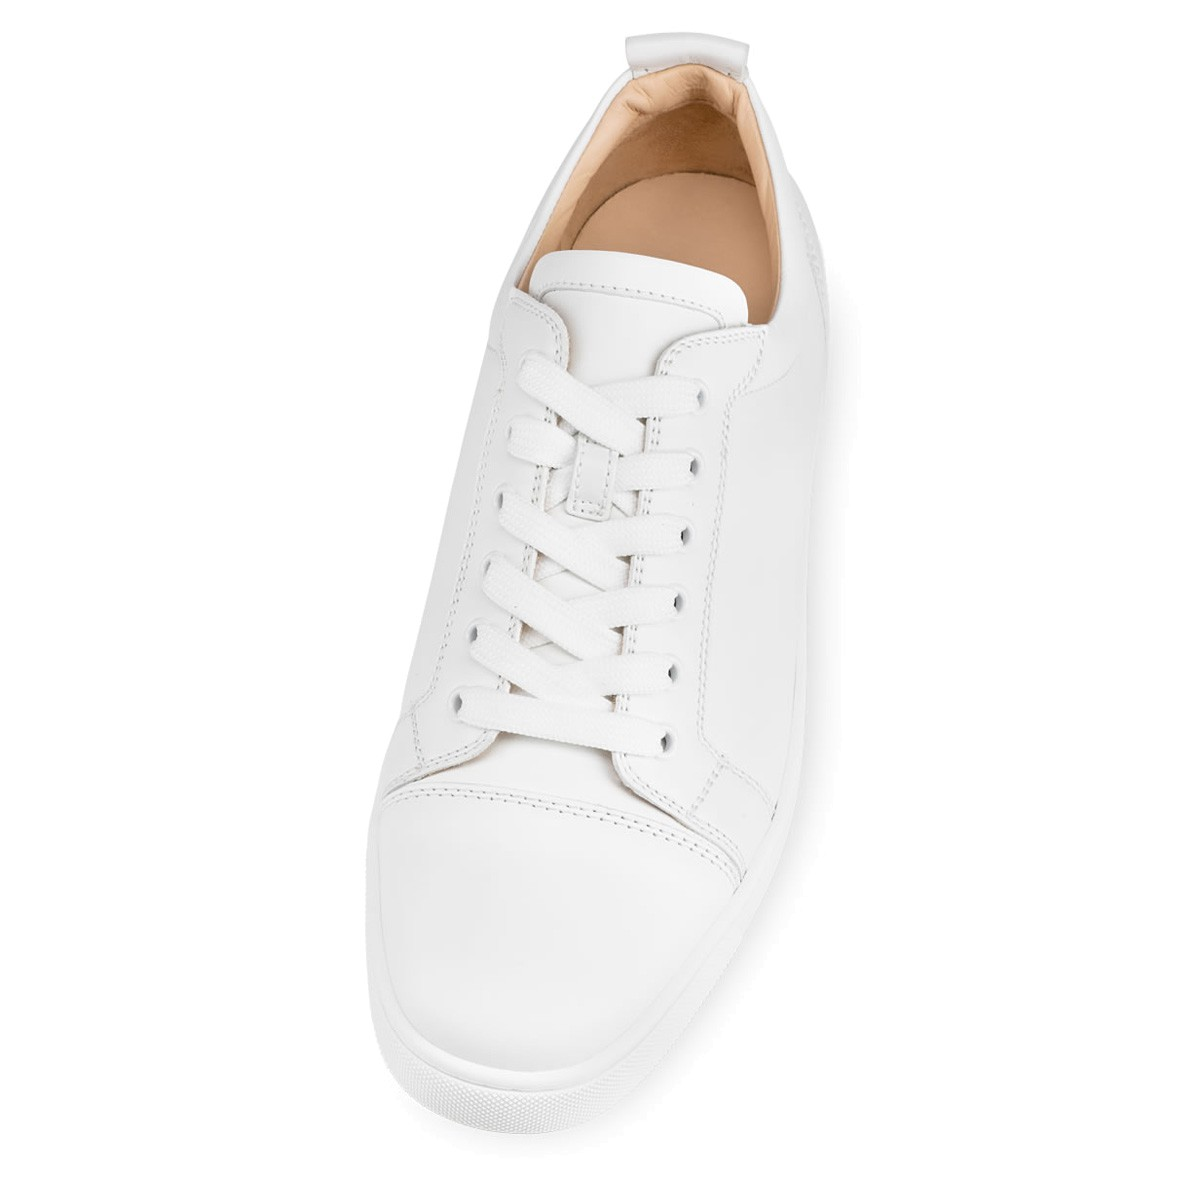 3b4cffb3043 Louis Junior White Leather - Men Shoes - Christian Louboutin